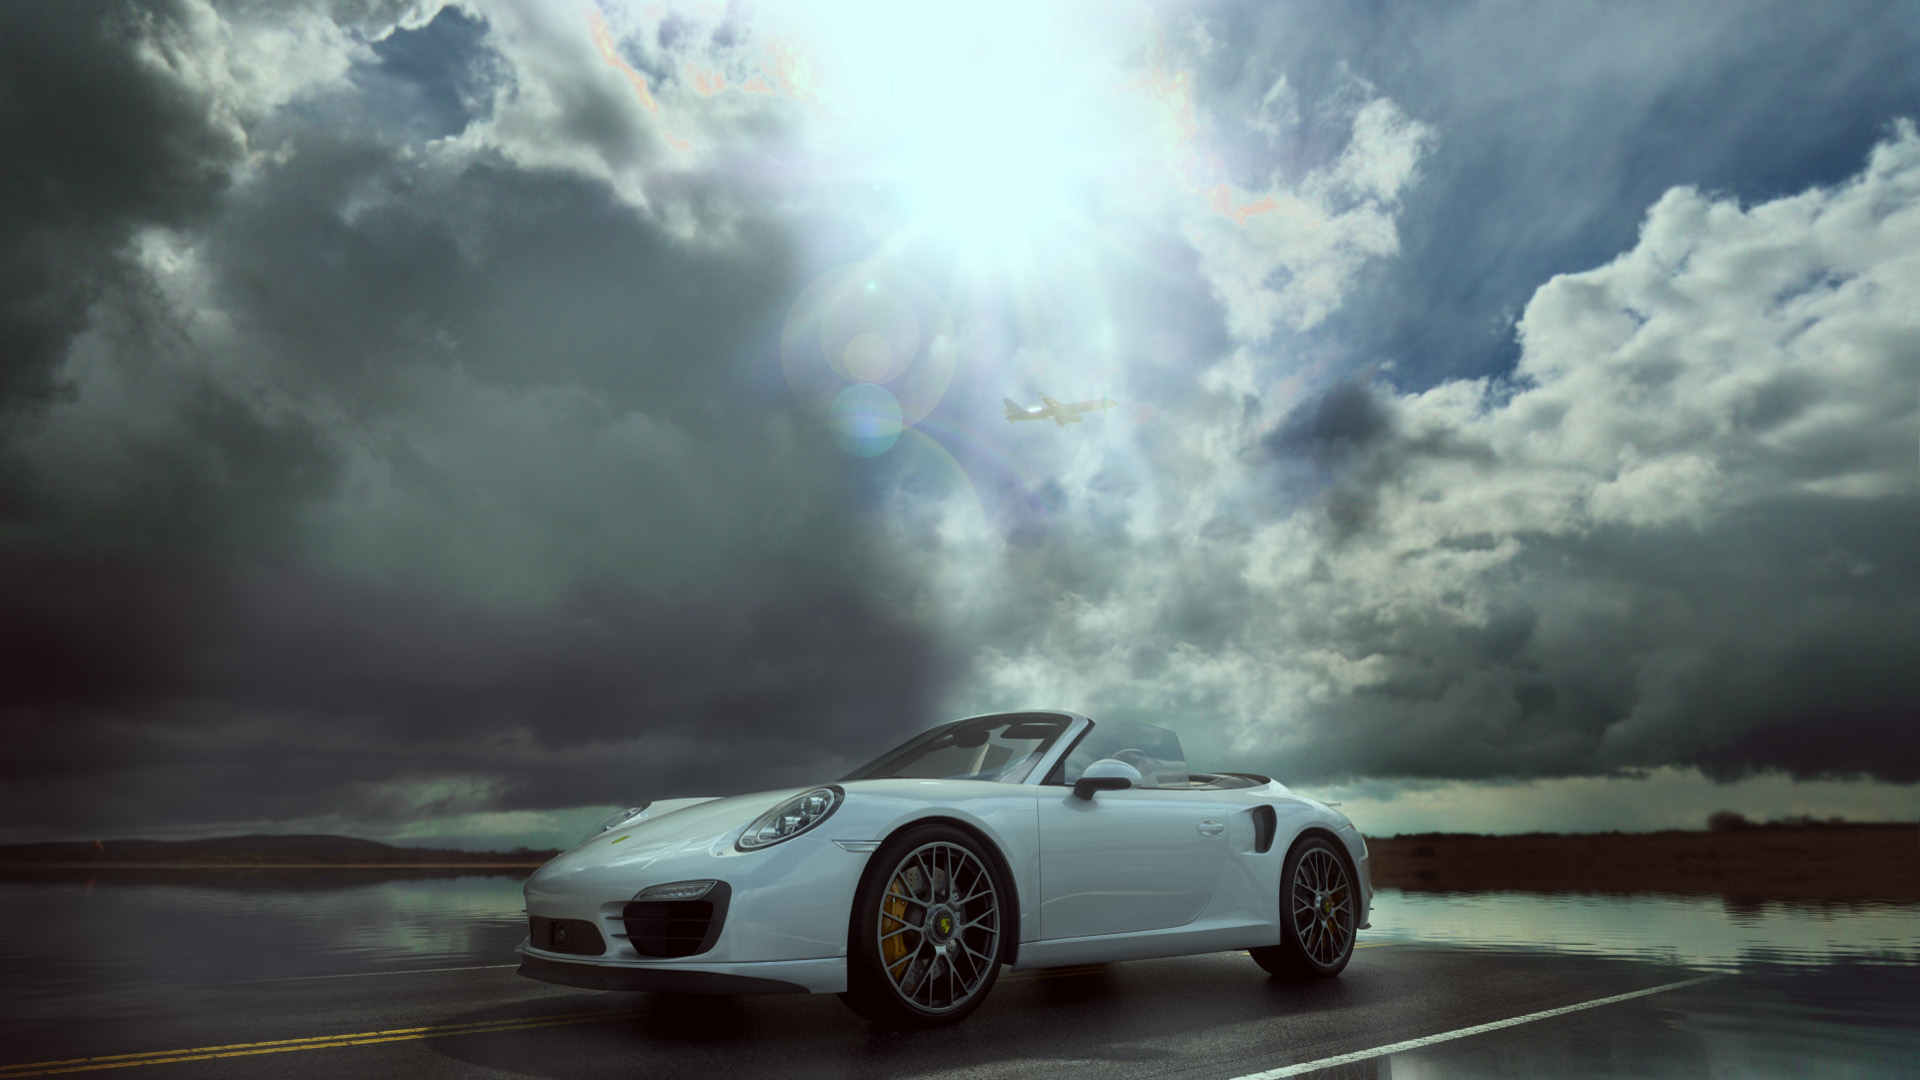 Porsche Turbo Cabriolet 2014 after rain scene 3d art